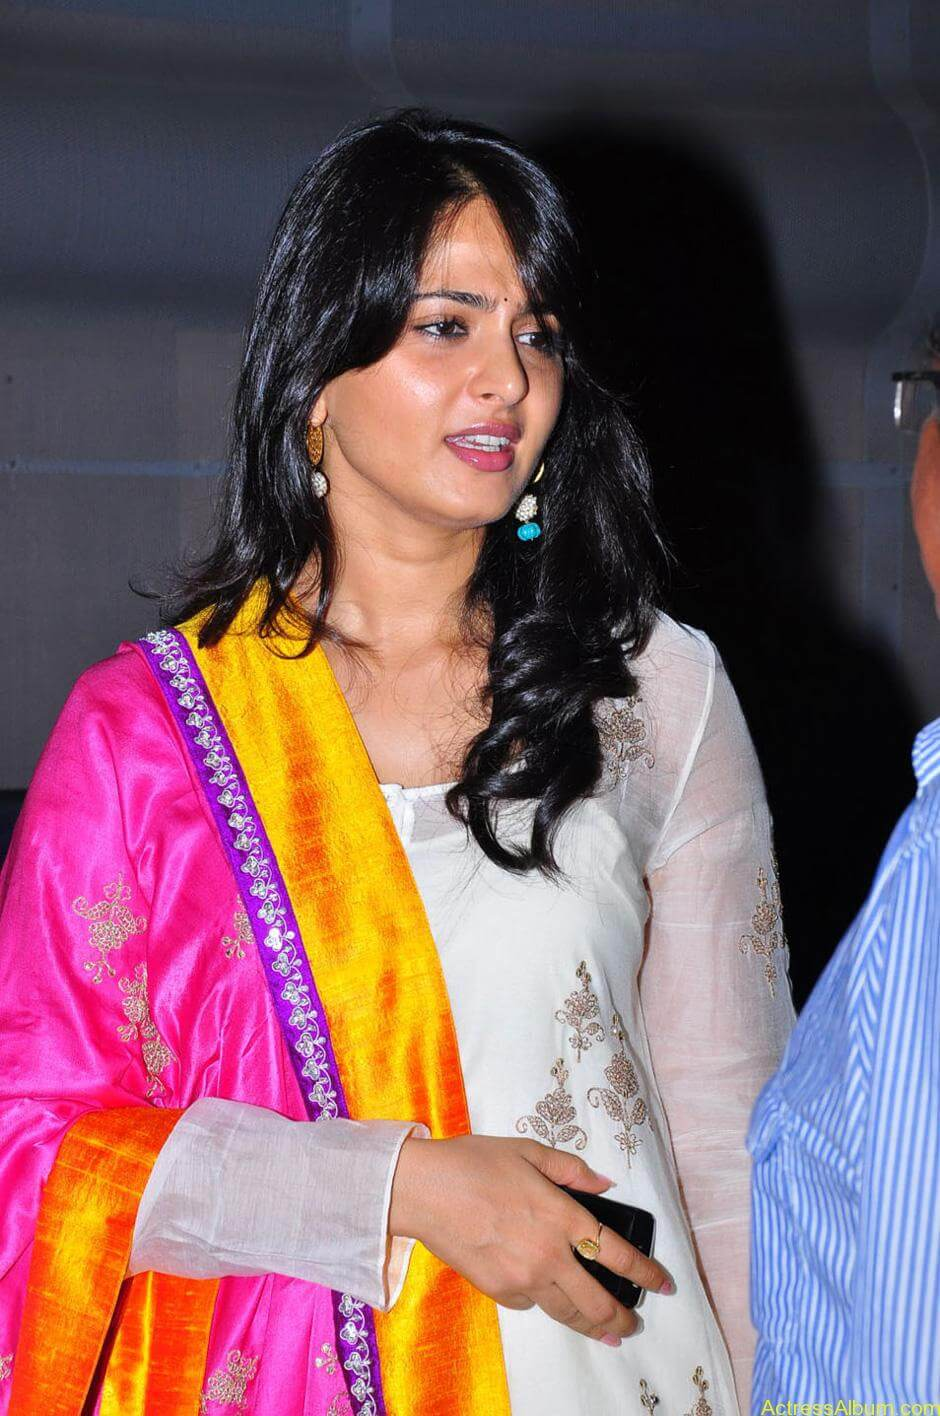 Anushka-Shetty-05-23-2011-Stills-011